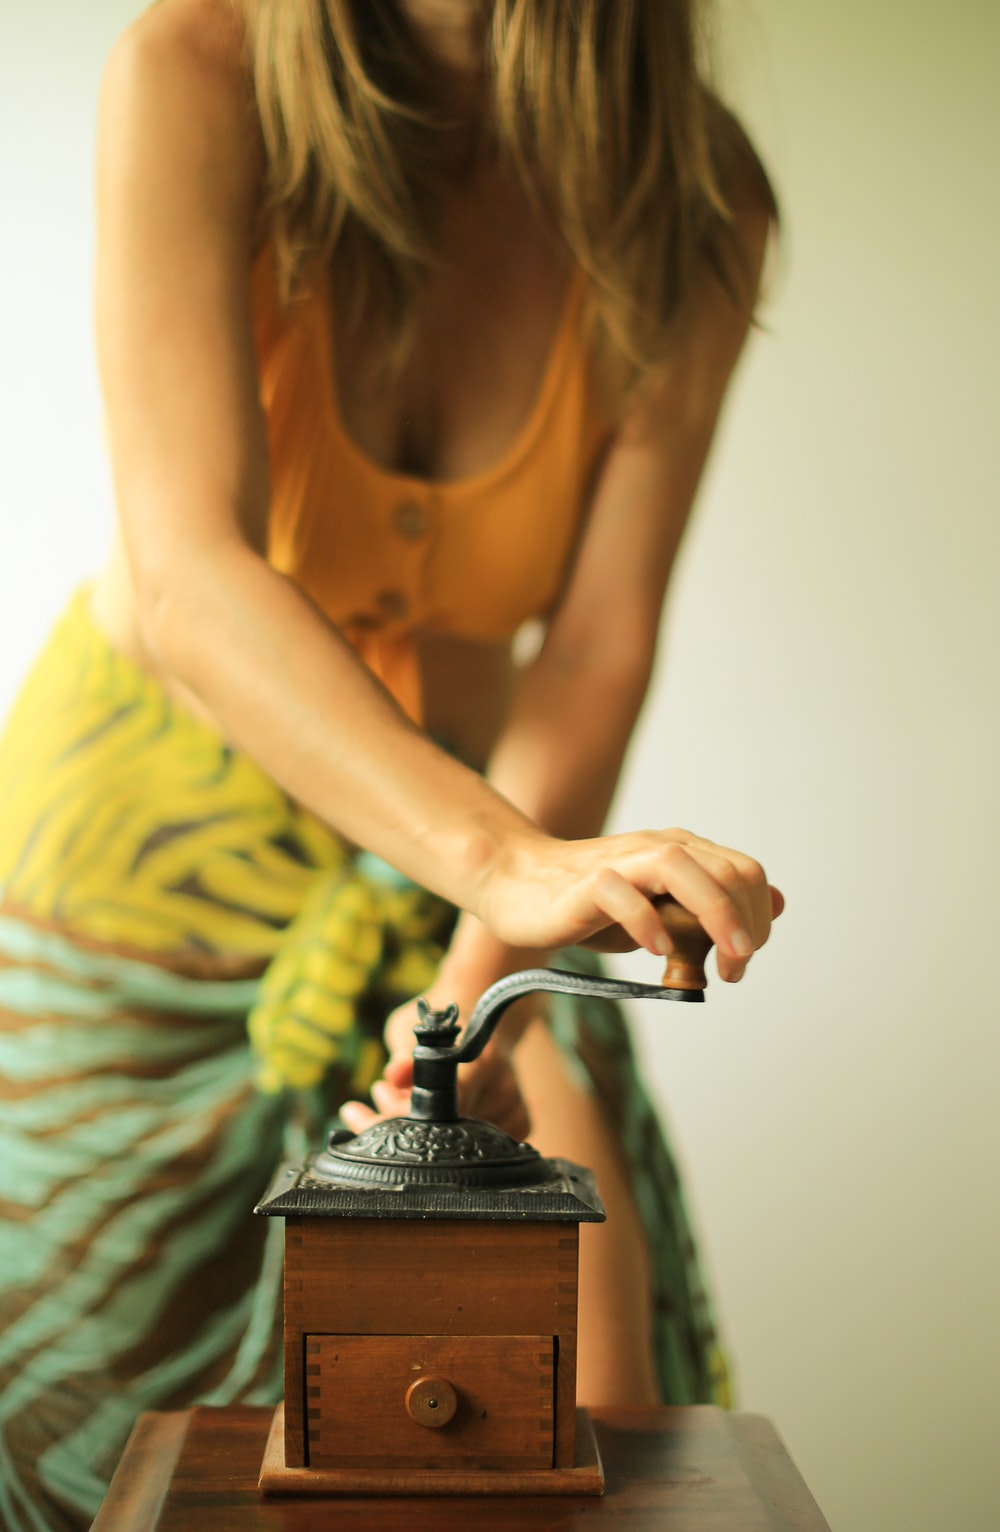 woman holding manual coffee grinder